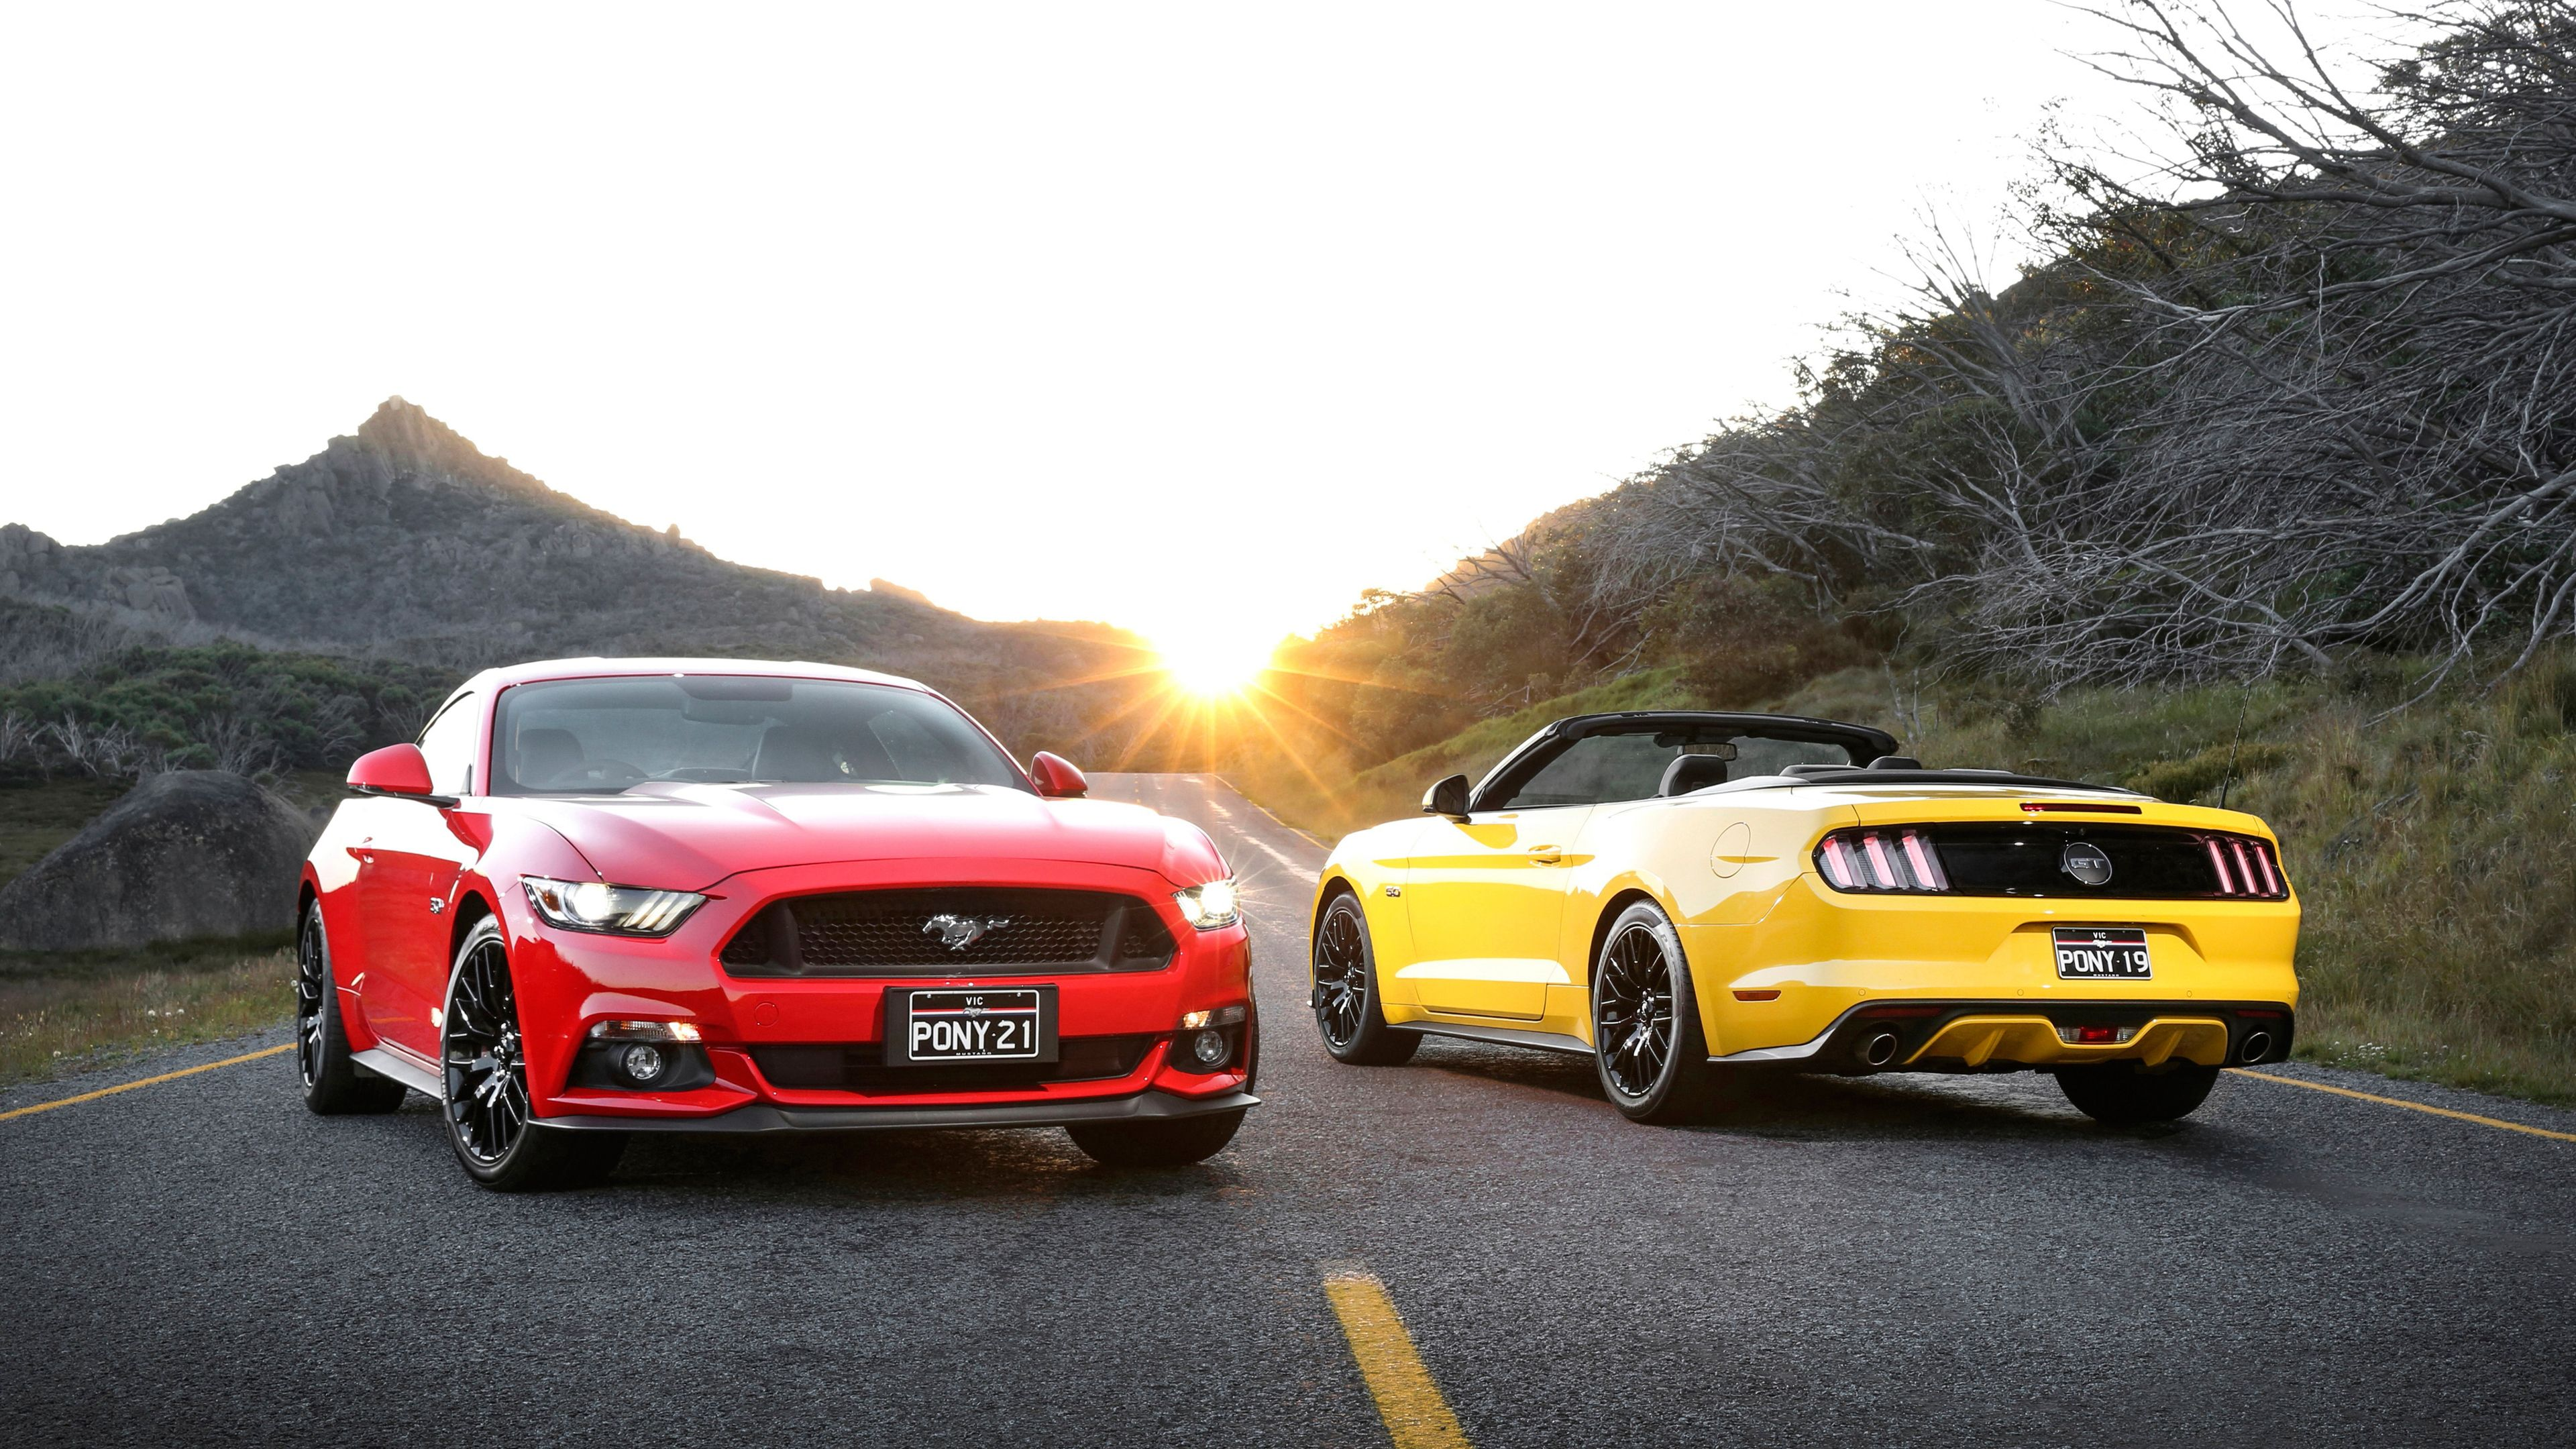 Red And Yellow Ford Mustang Red Wallpapers Mustang Wallpapers Hd Wallpapers Ford Wallpapers Ford Mustang Yellow Mustang Ford Mustang Wallpaper Ford Mustang